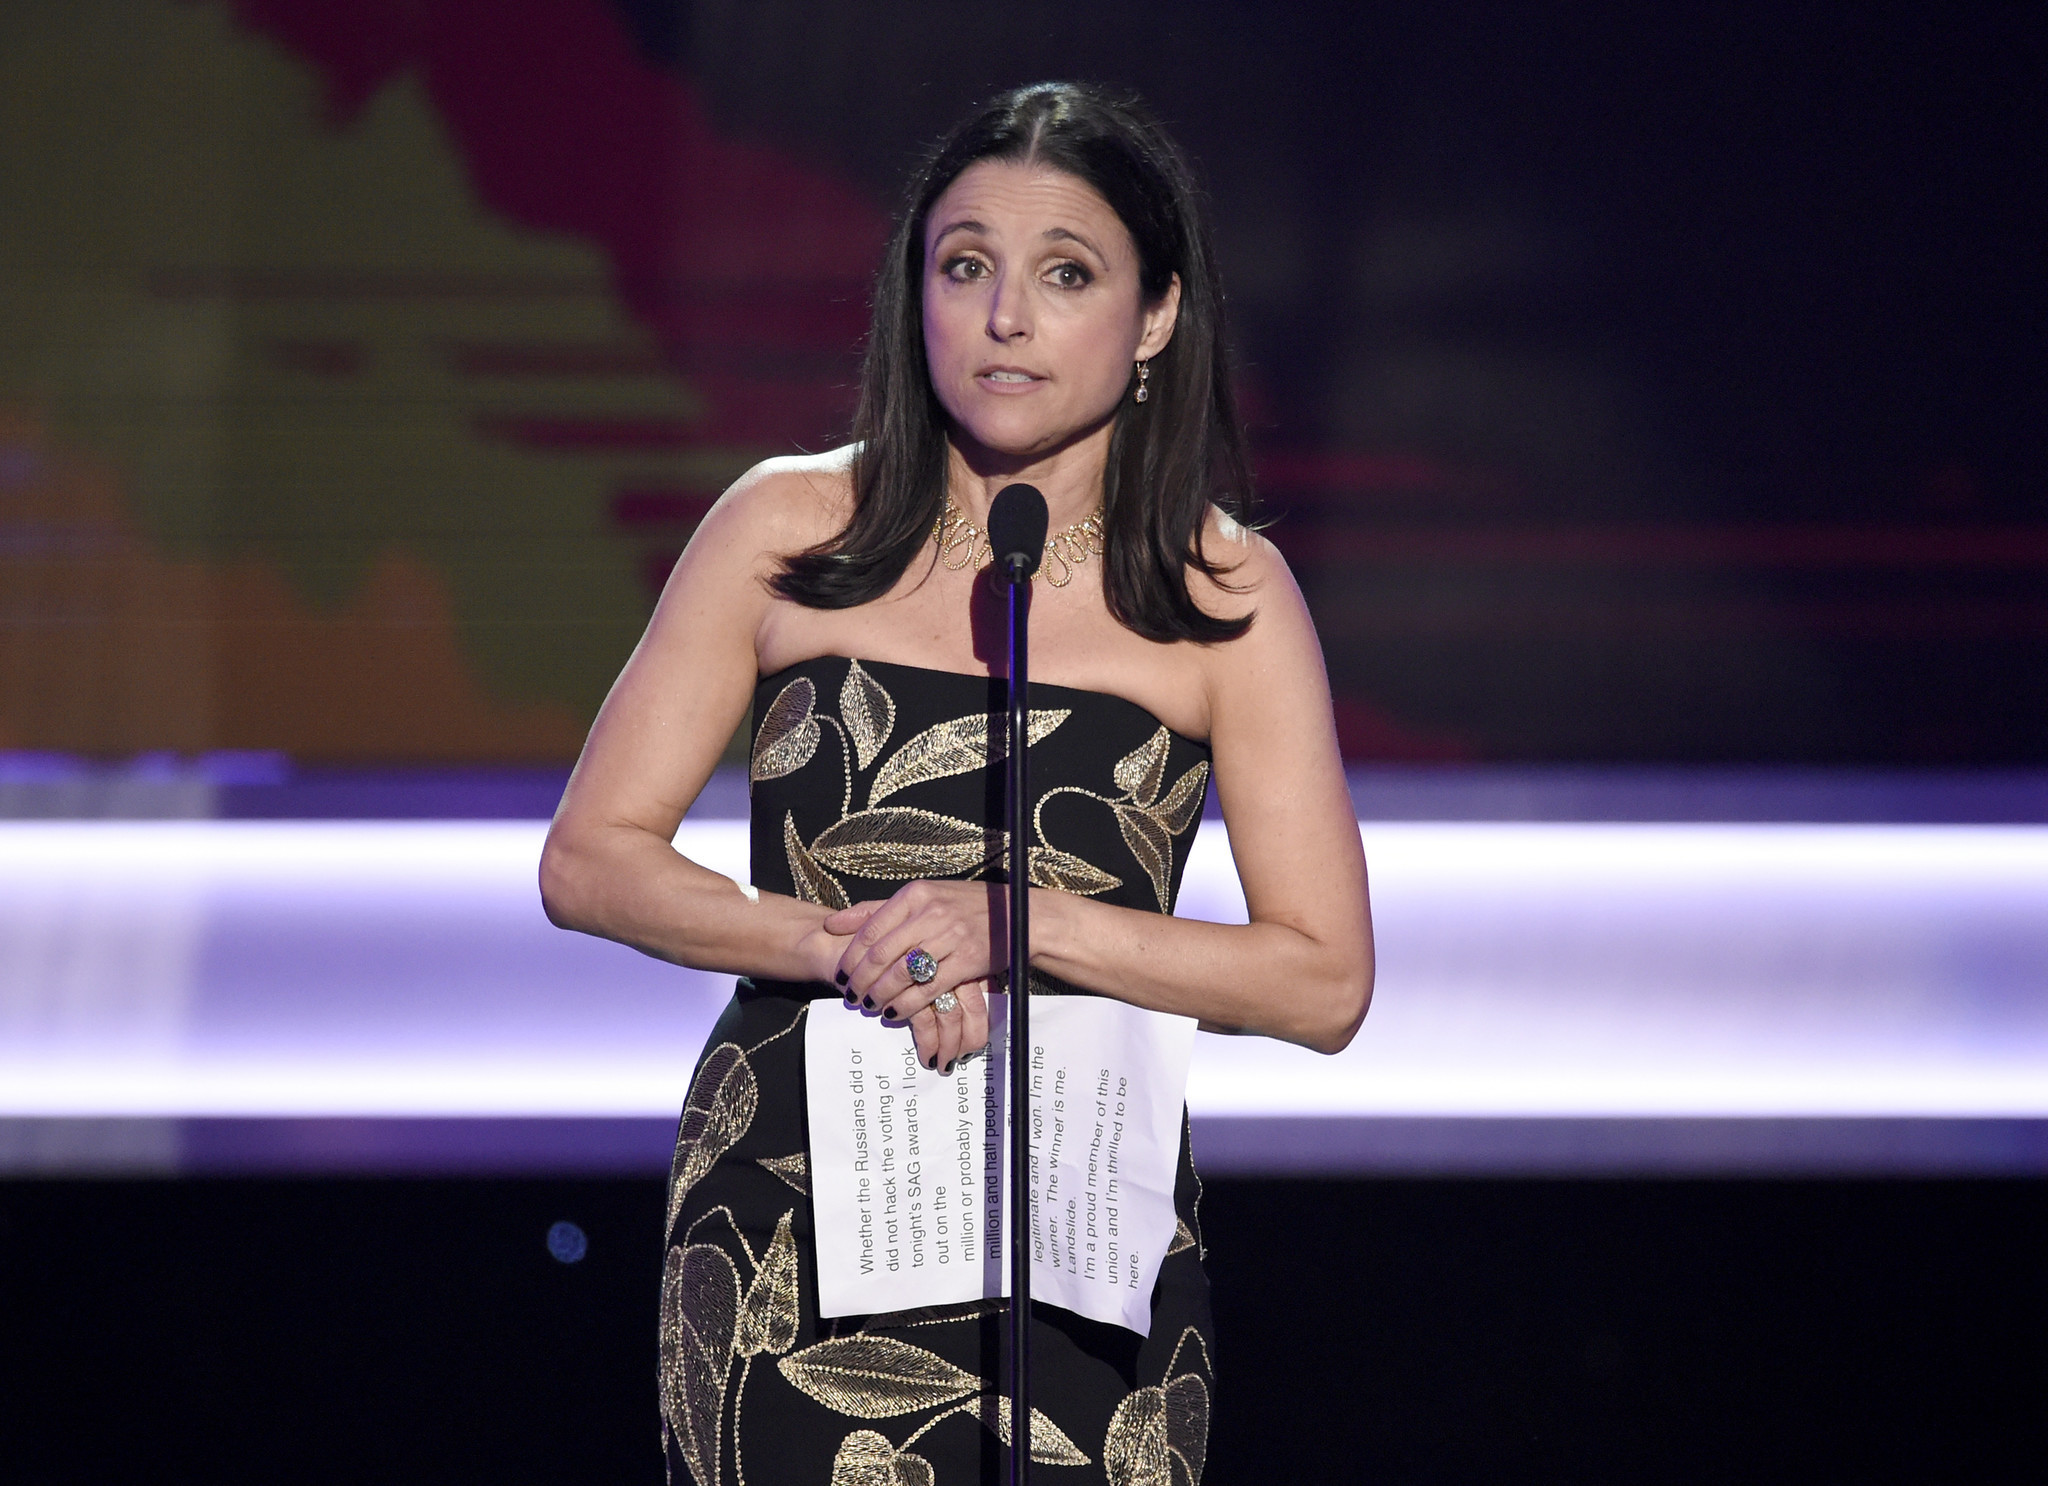 """Veep"" star Julia Louis-Dreyfus accepts the award for performance by a female actor in a comedy series. (Chris Pizzello / Invision/AP)"